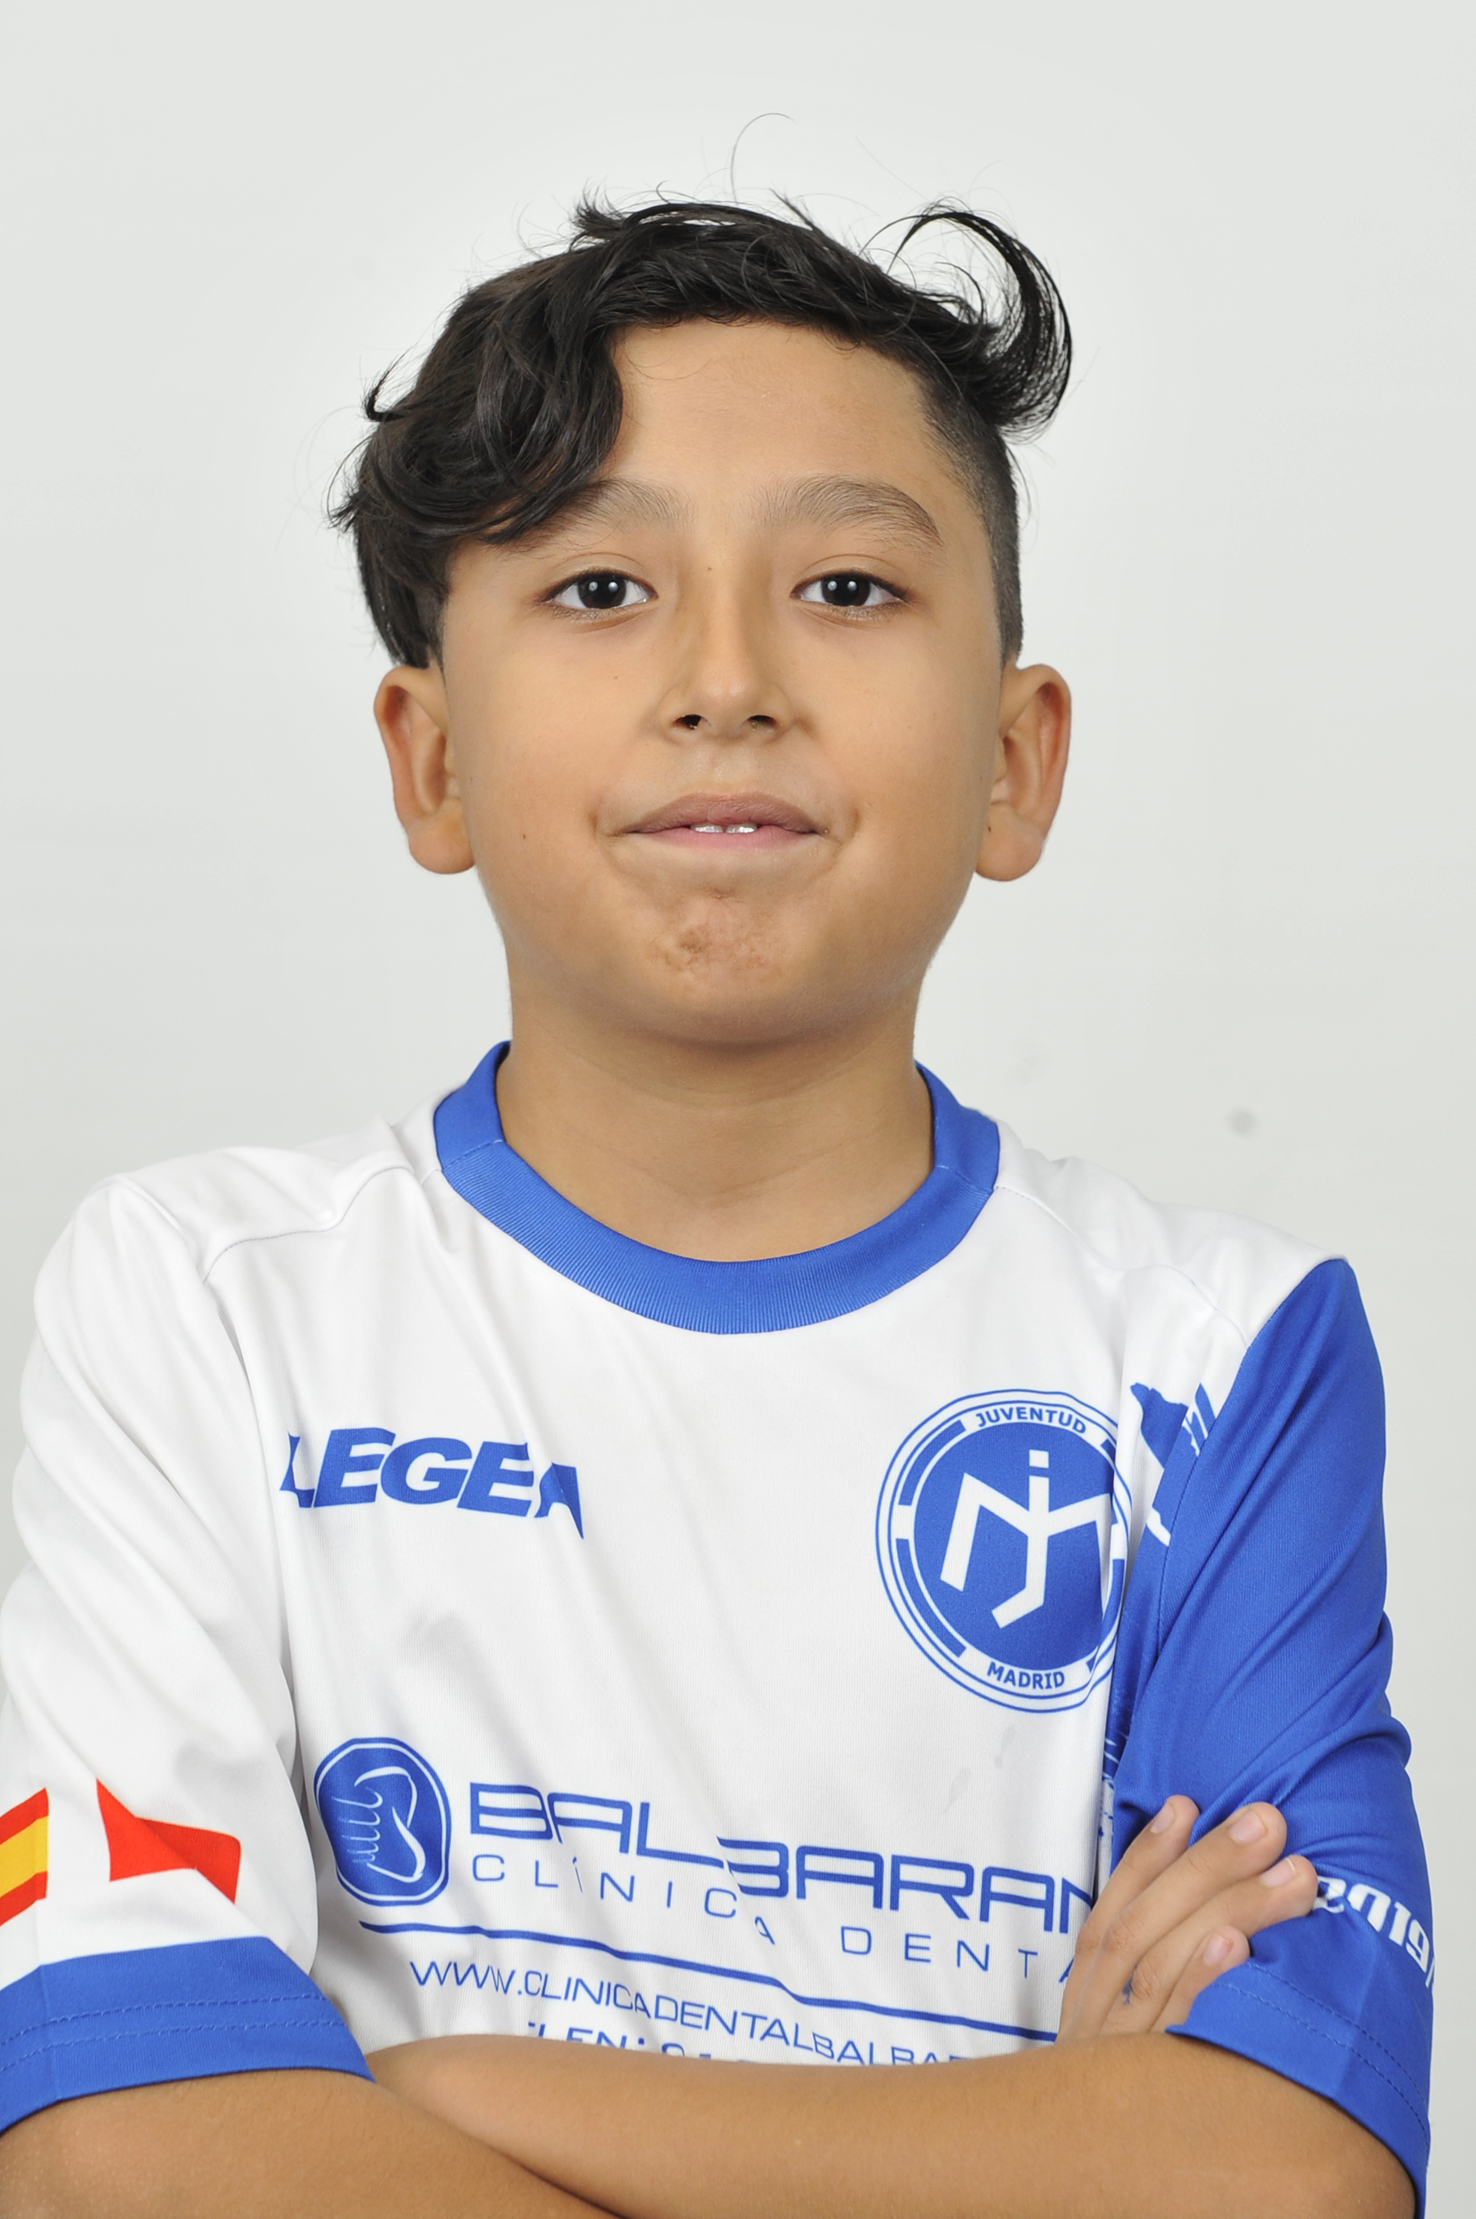 MIGUEL ANGE